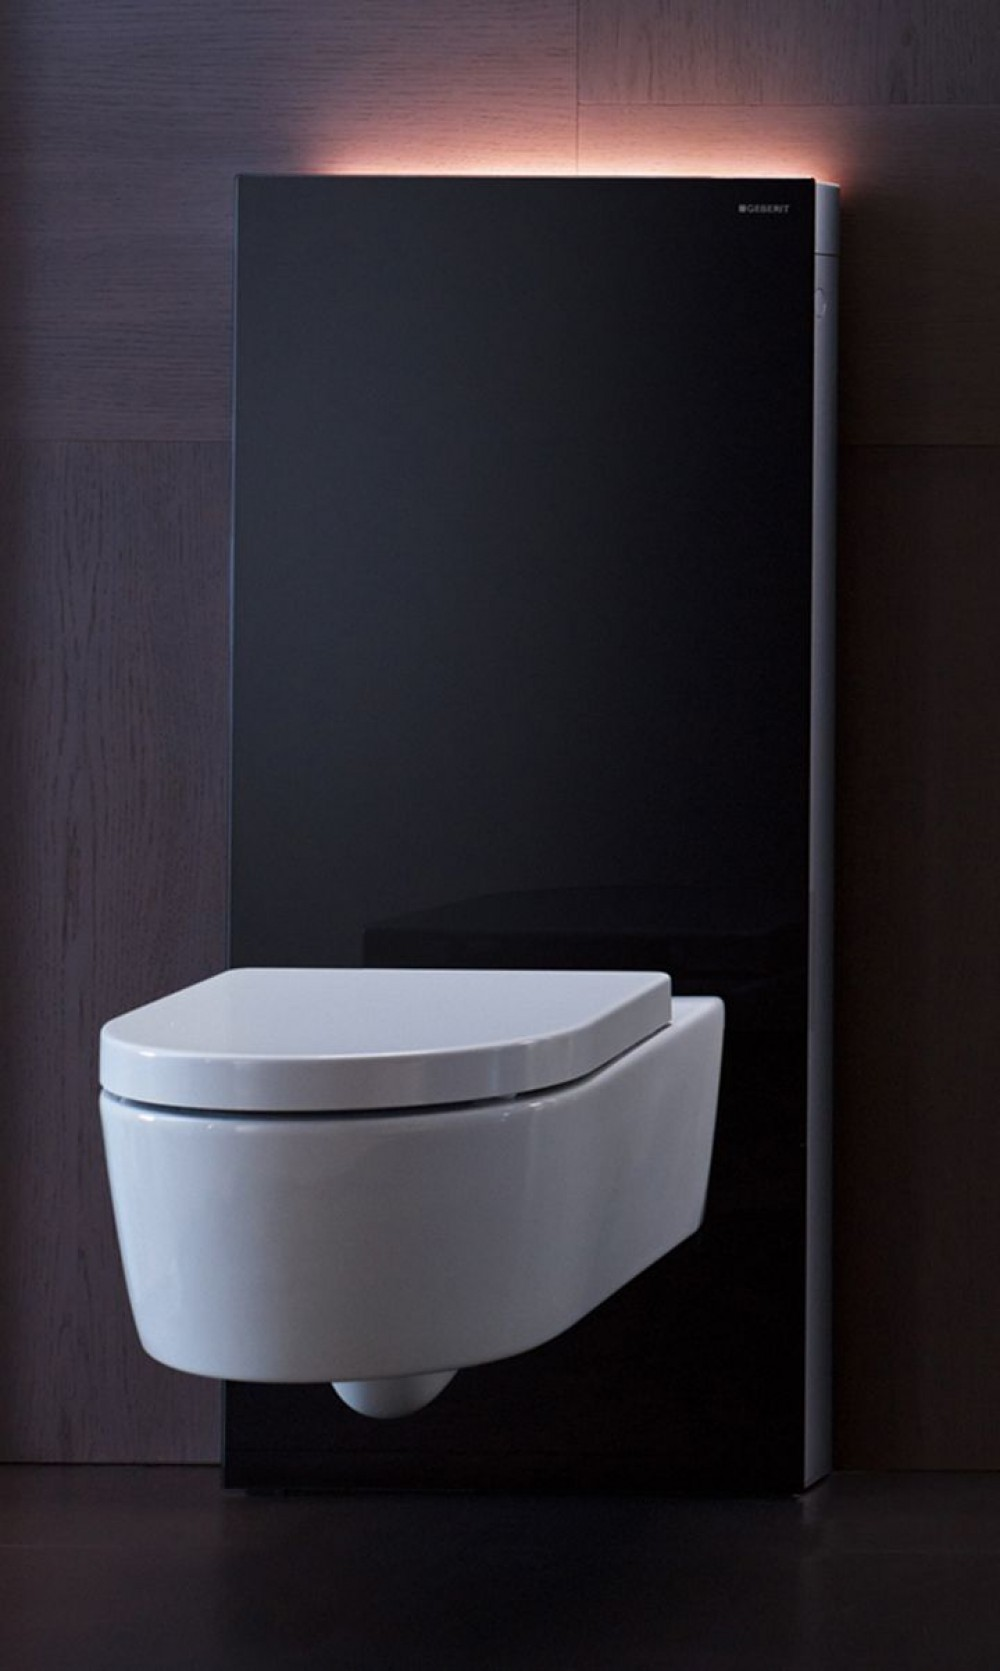 geberit monolith plus sanit rmodul f r wand wc h 101 cm schwarz. Black Bedroom Furniture Sets. Home Design Ideas